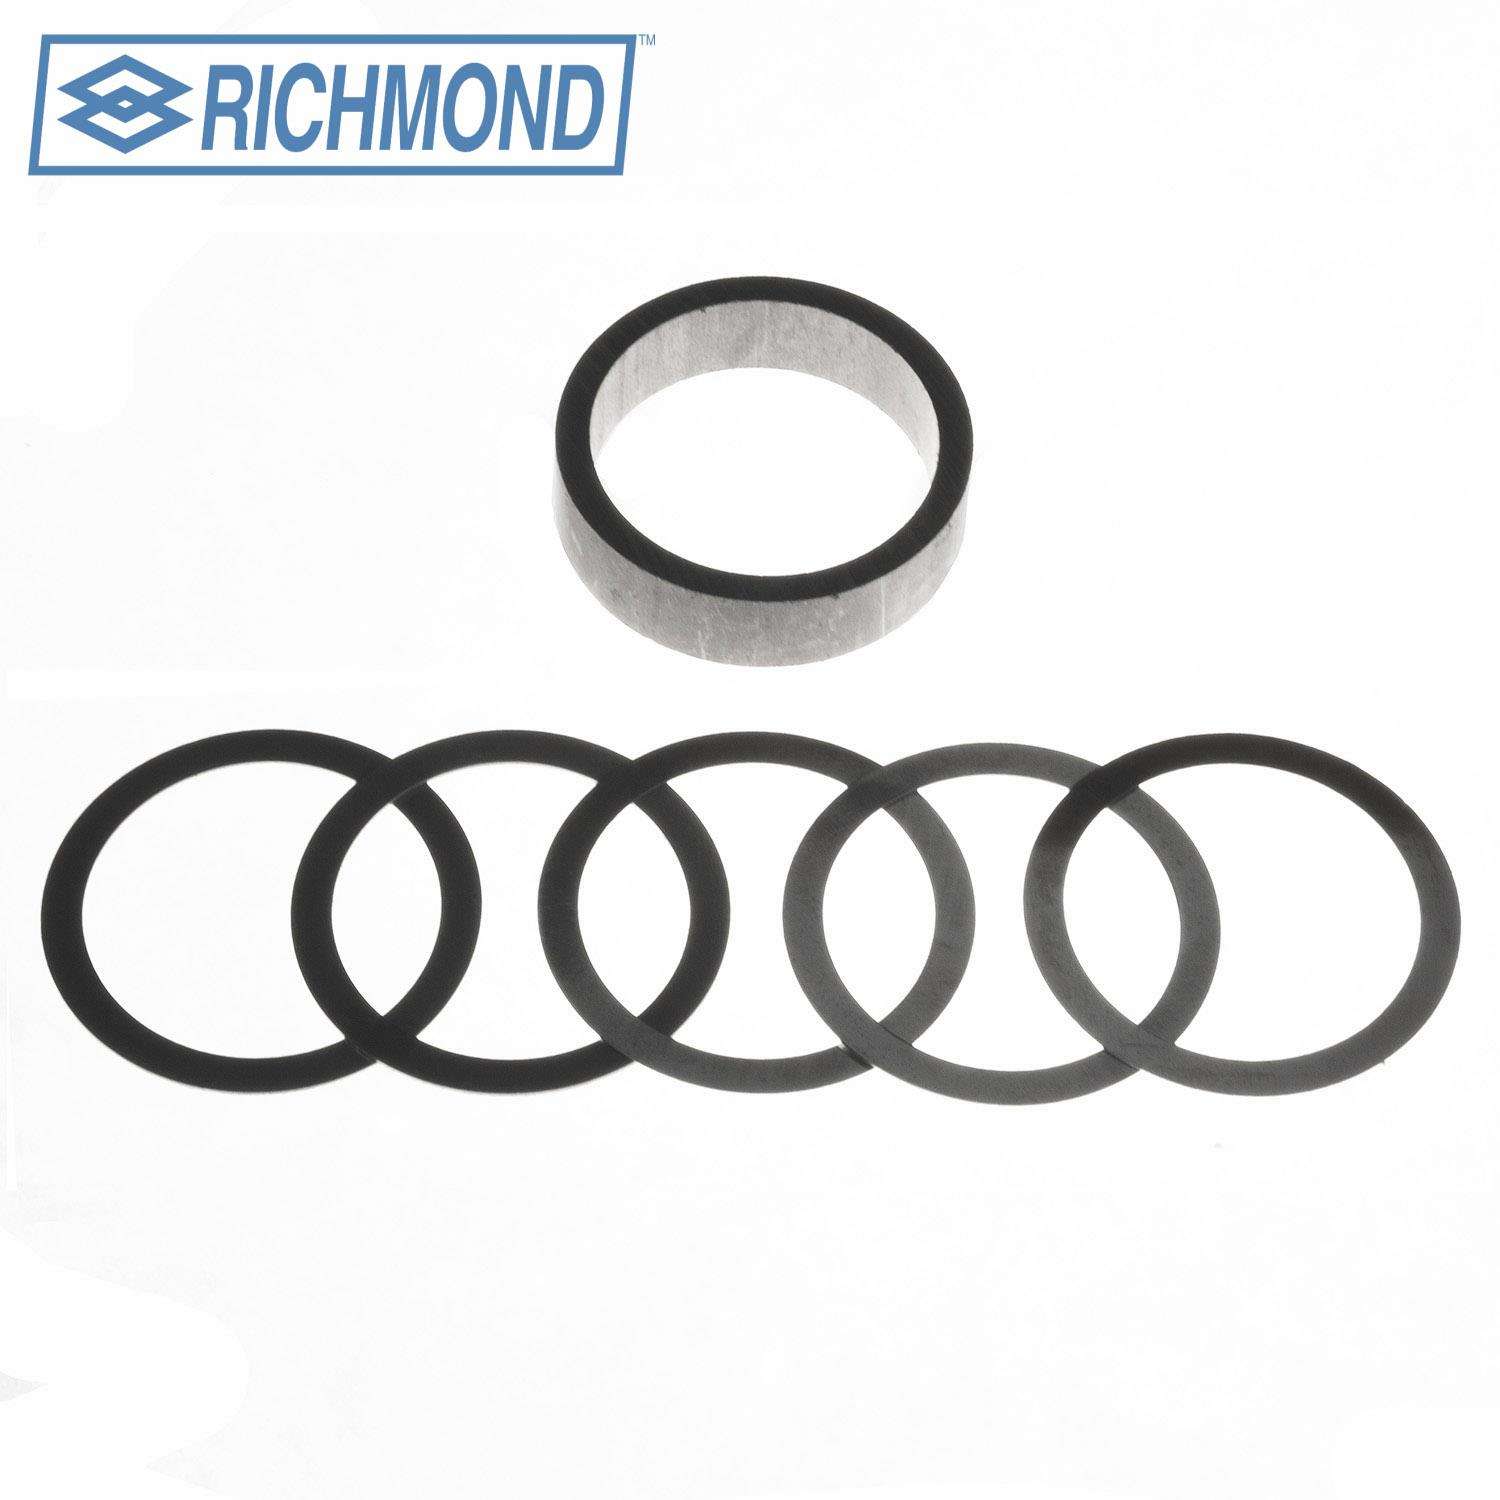 04-0011-S Richmond Gear Differential Pinion Bearing Spacer Ford 8.8/